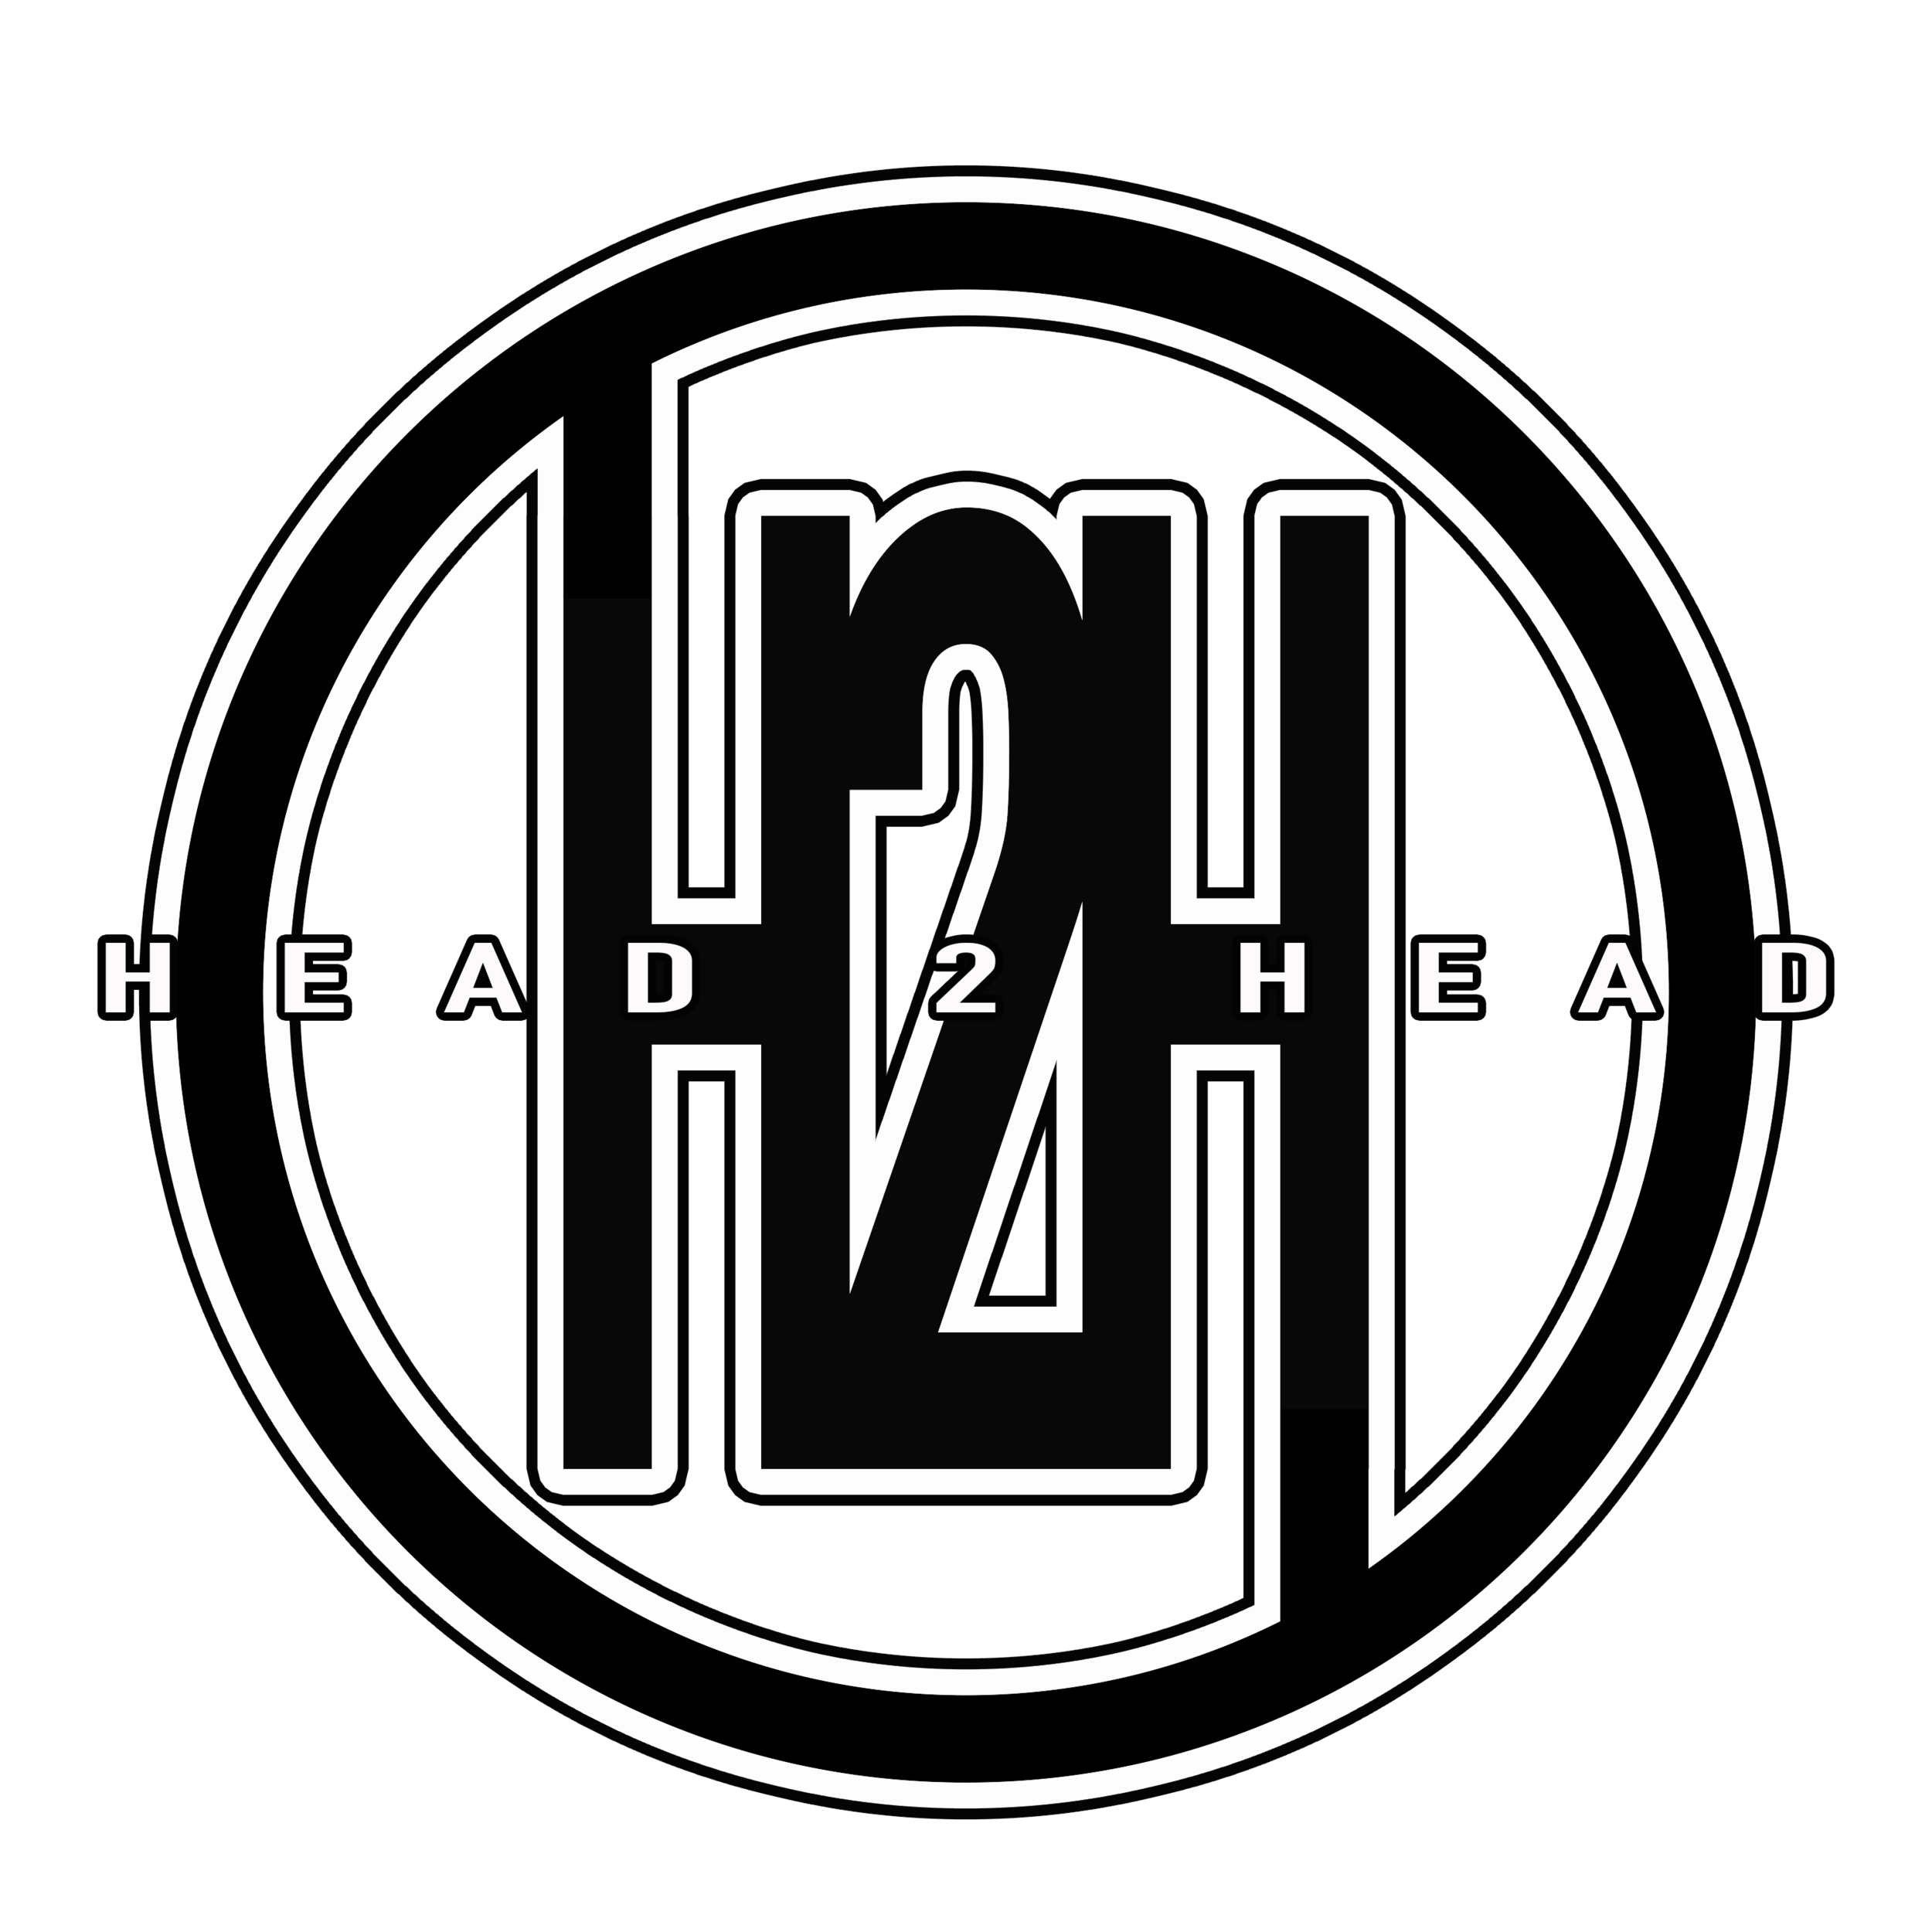 Head 2 Head  Concert and Event Photography / Videography